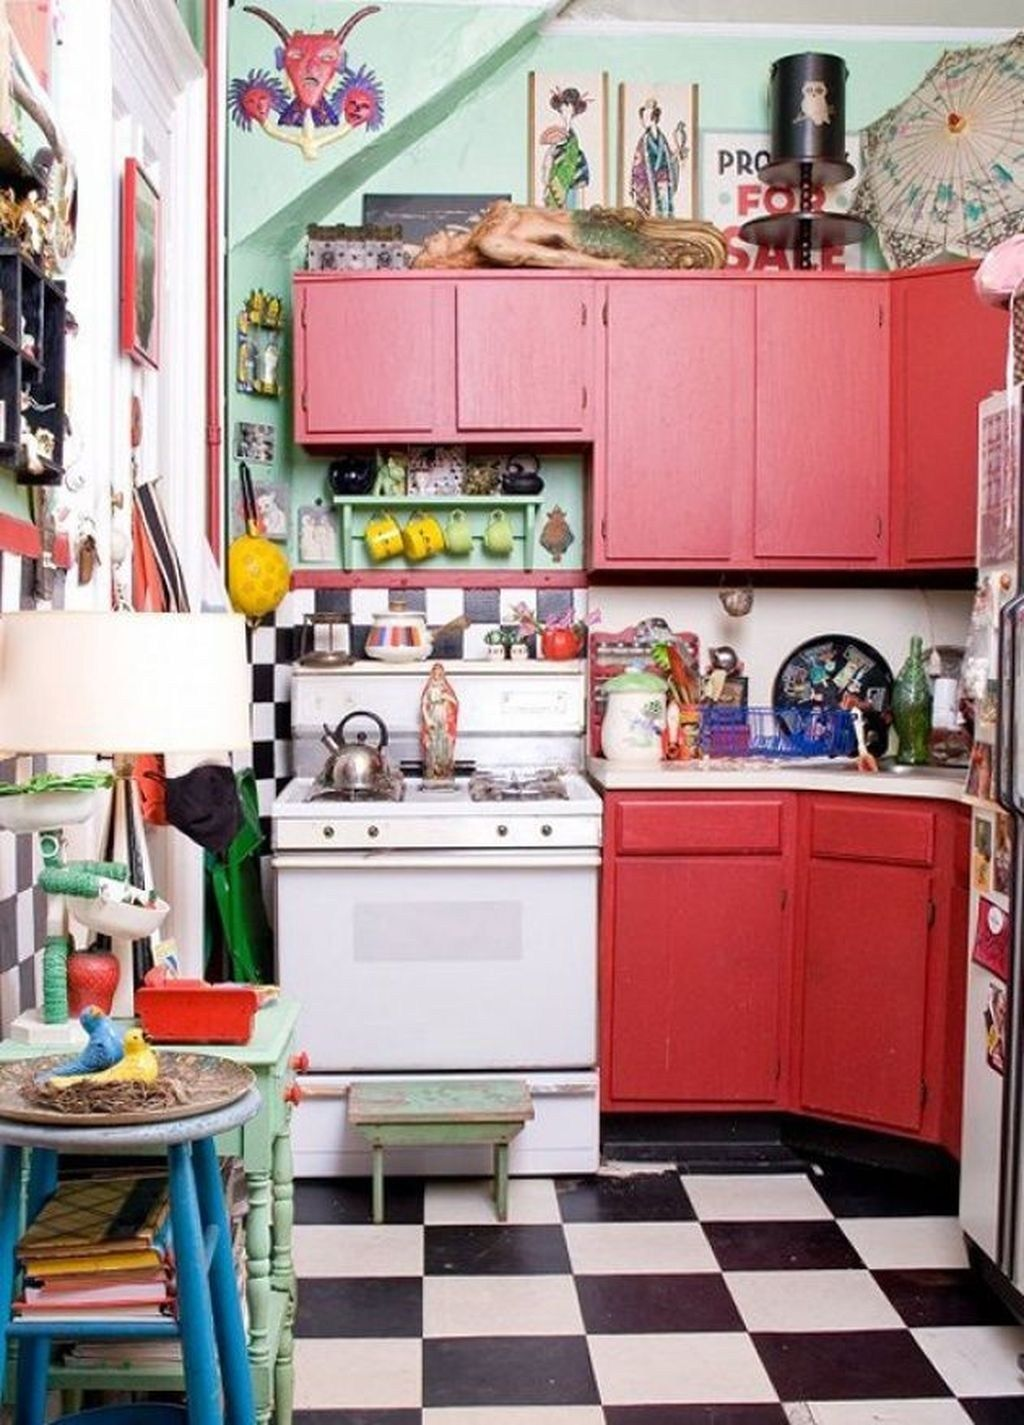 49 Creative Small Kitchen Design Ideas For Your Apartment Funky